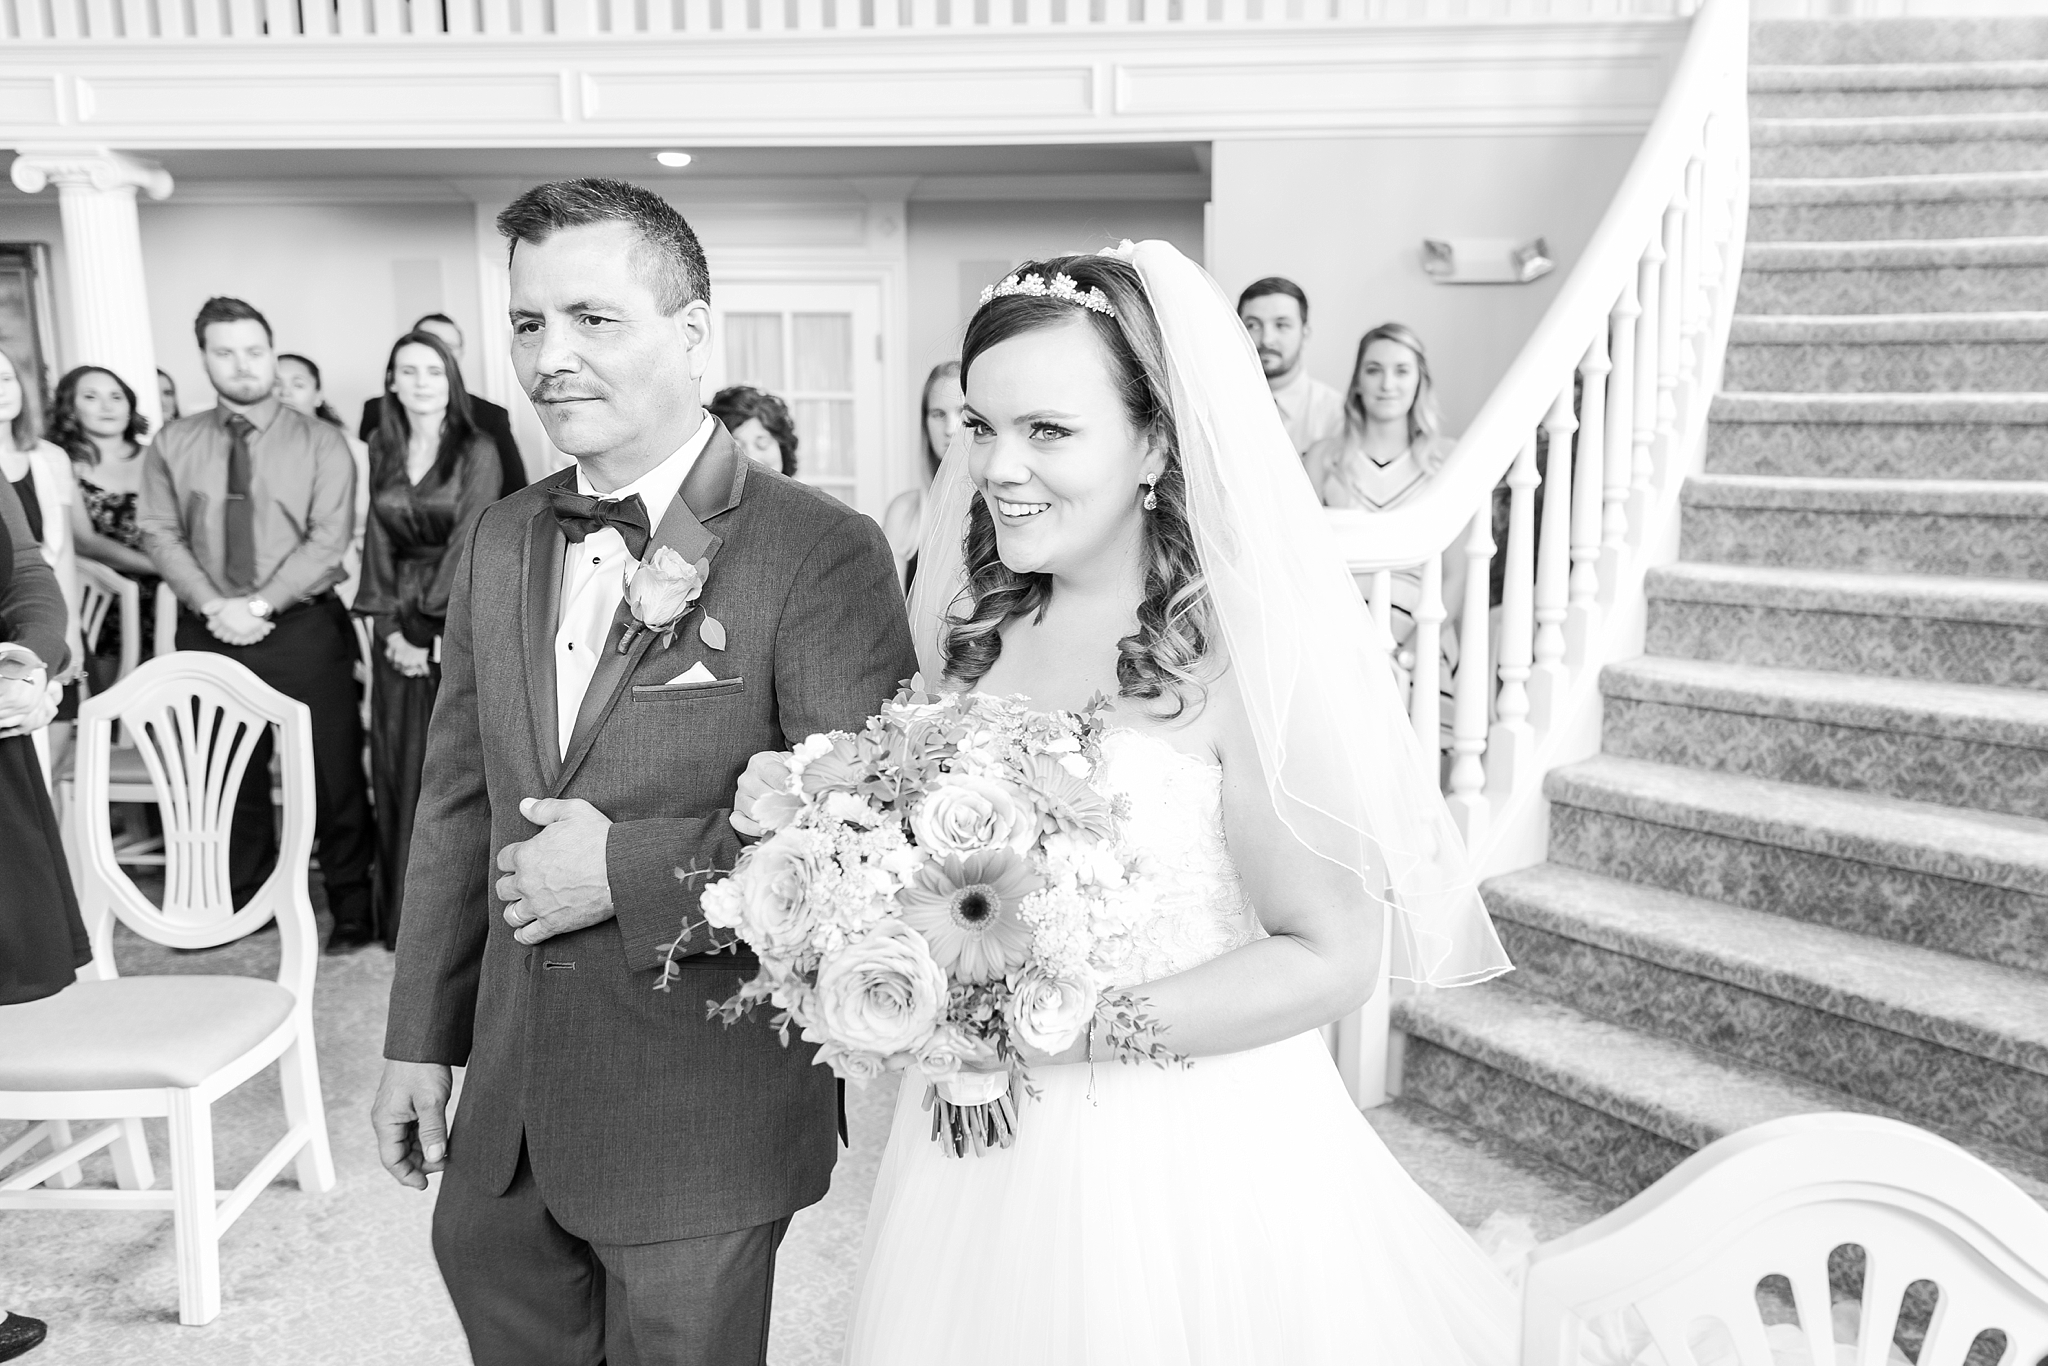 romantic-artful-candid-wedding-photos-in-st-clair-shores-at-the-white-house-wedding-chapel-by-courtney-carolyn-photography_0027.jpg